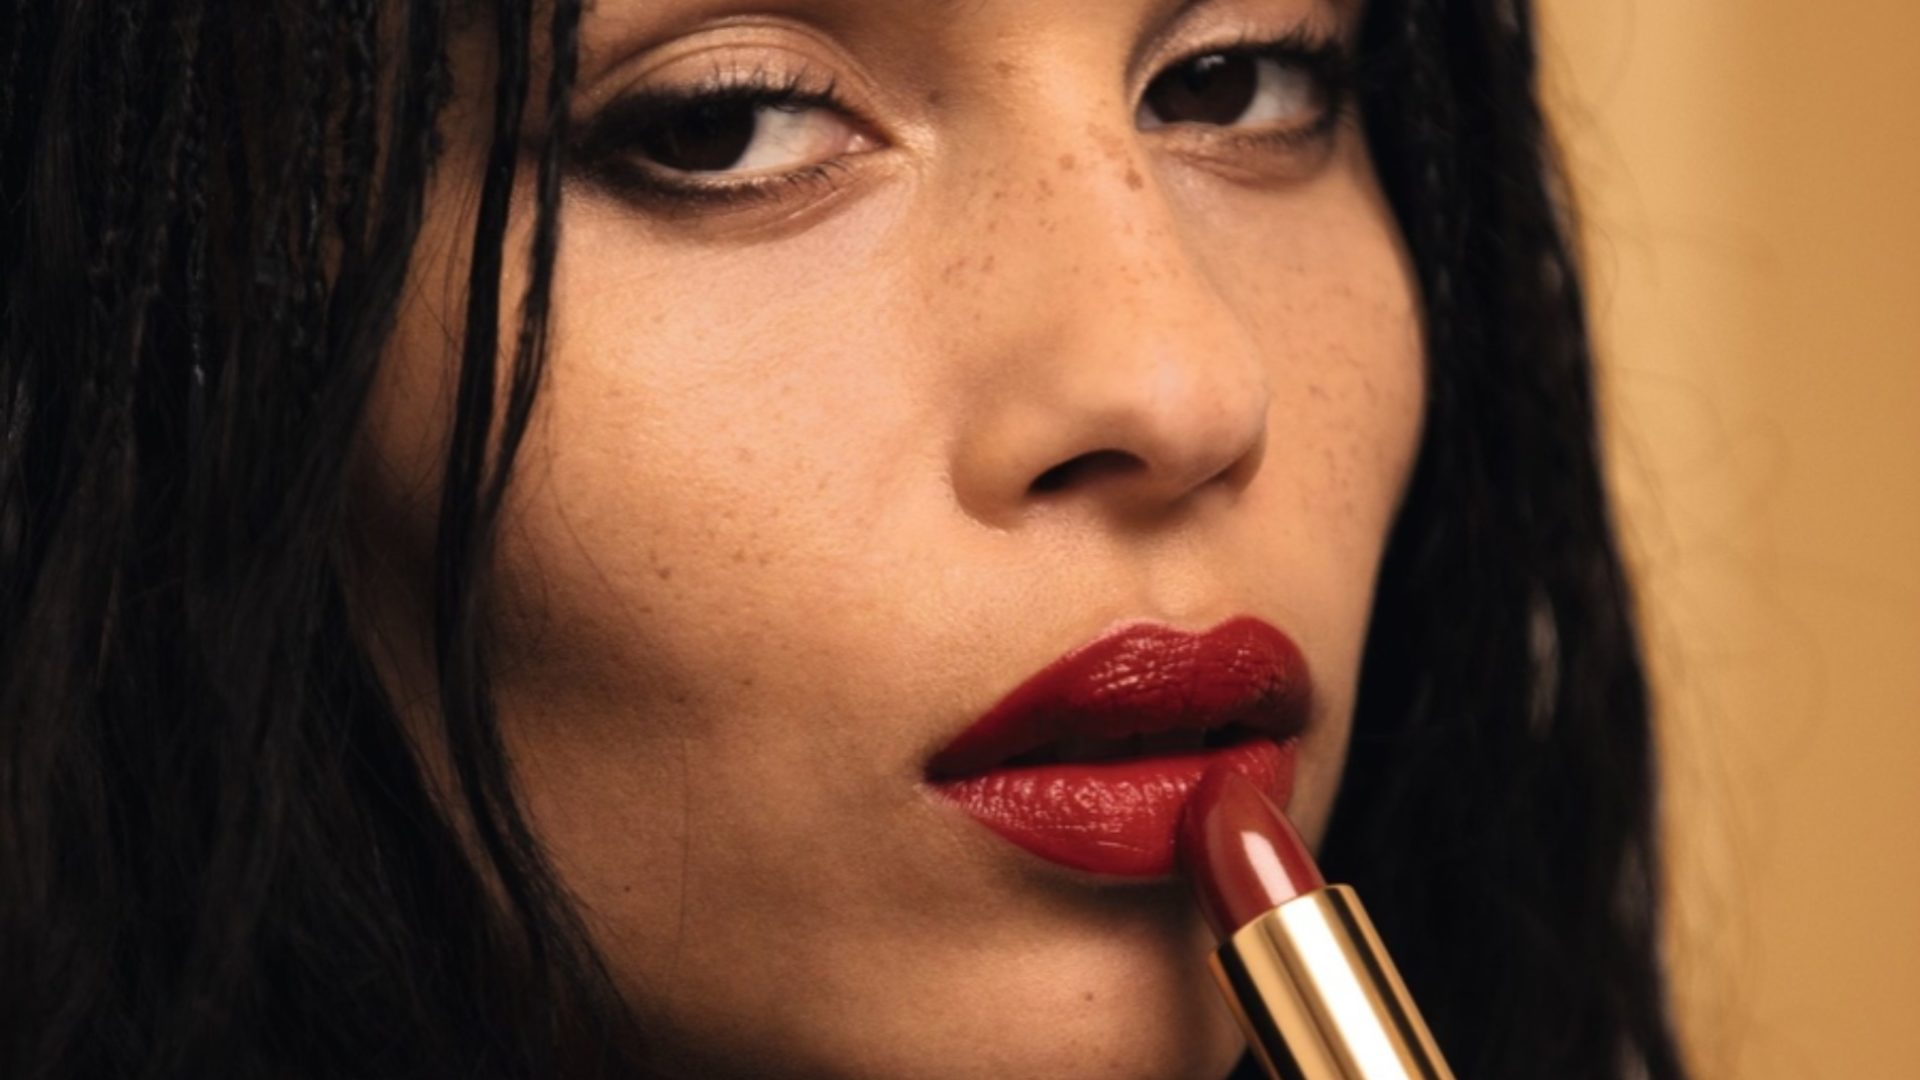 Zoe Kravitz Shares Details On Her New YSL Lipstick Collection And The Women Who Inspired It